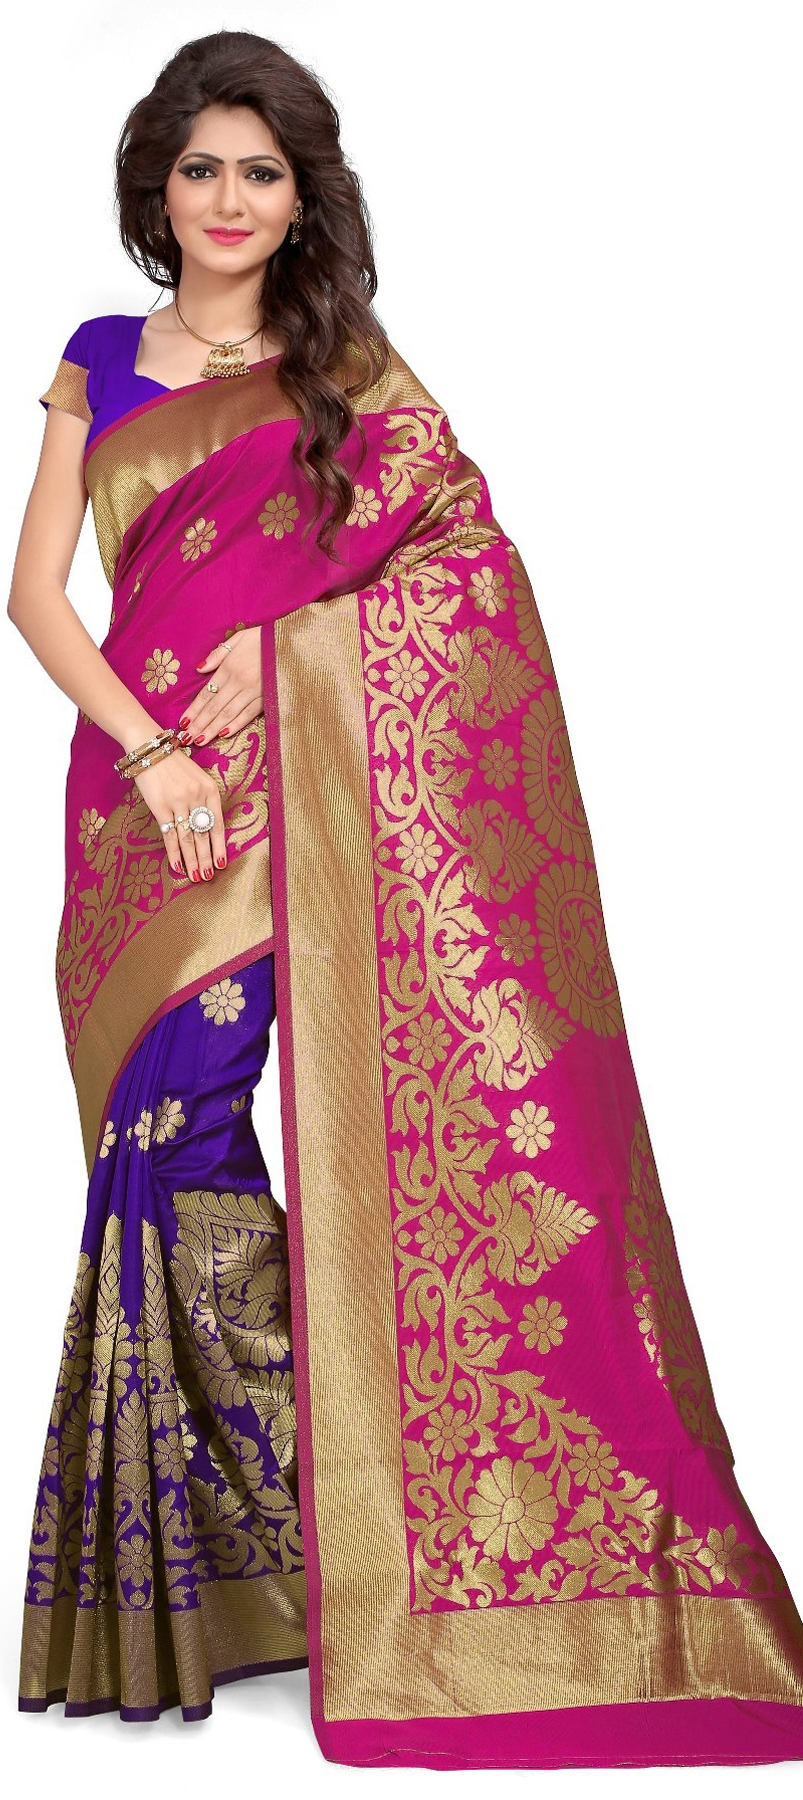 763983: Pink and Majenta, Purple and Violet color family Silk Sarees ...